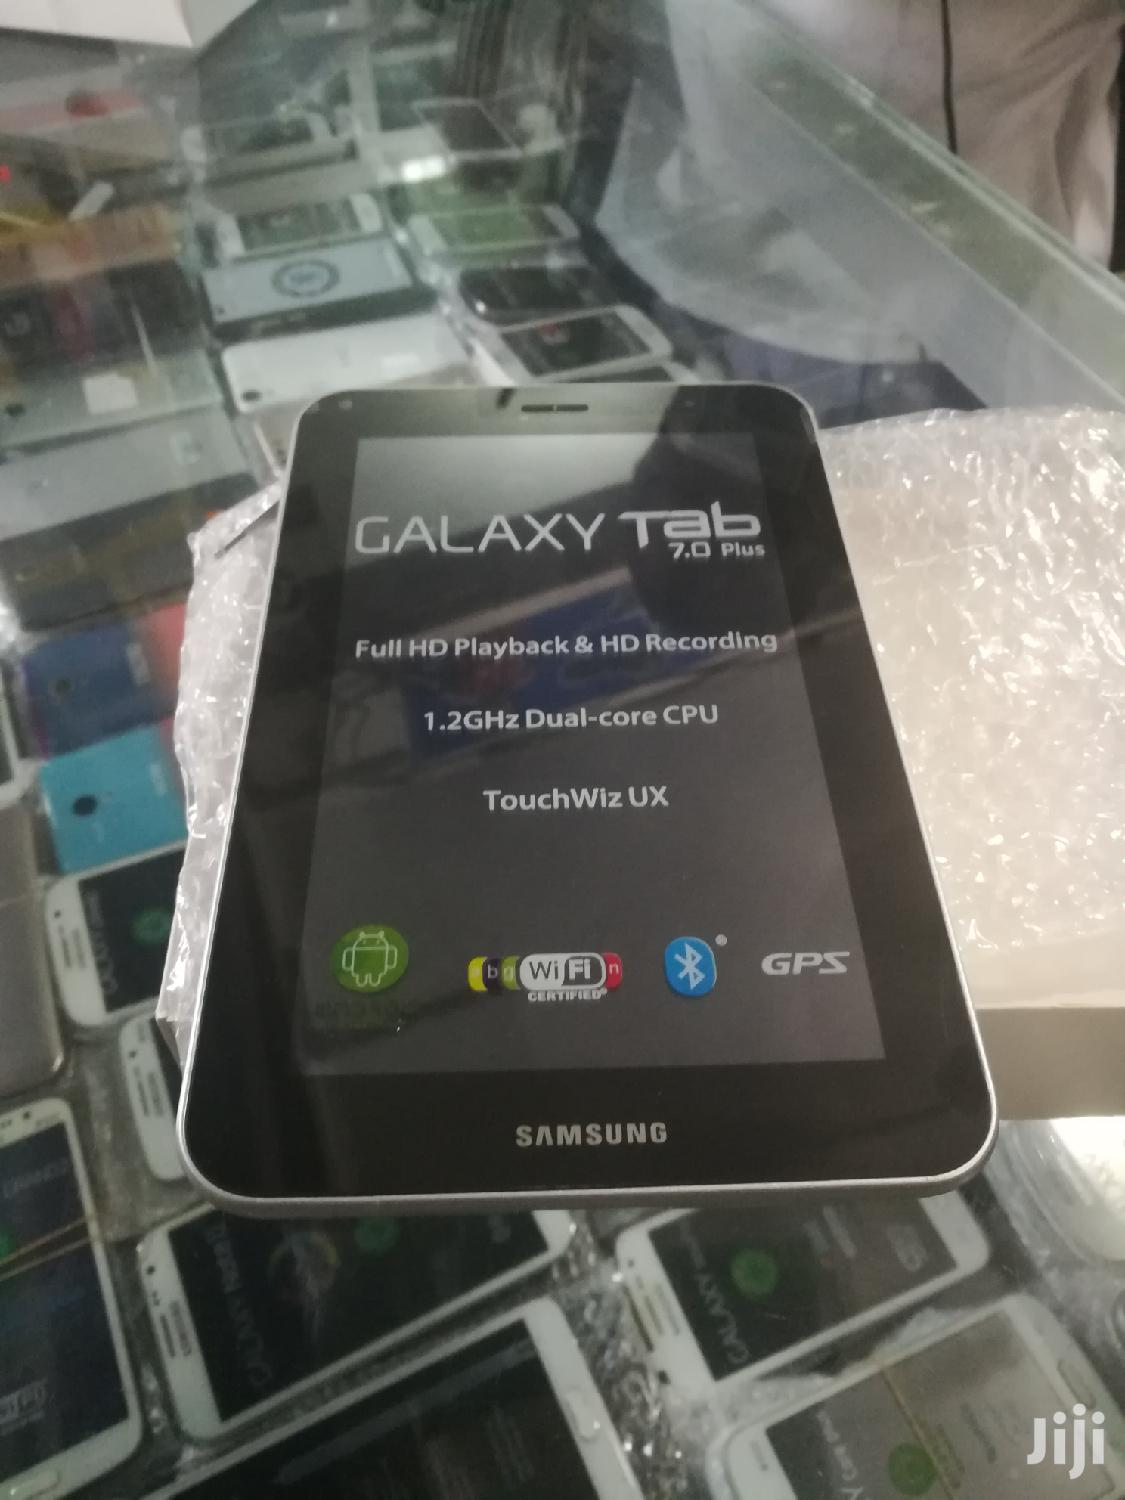 New Samsung Galaxy Tab 2 7.0 P3100 16 GB White | Tablets for sale in Odorkor, Greater Accra, Ghana